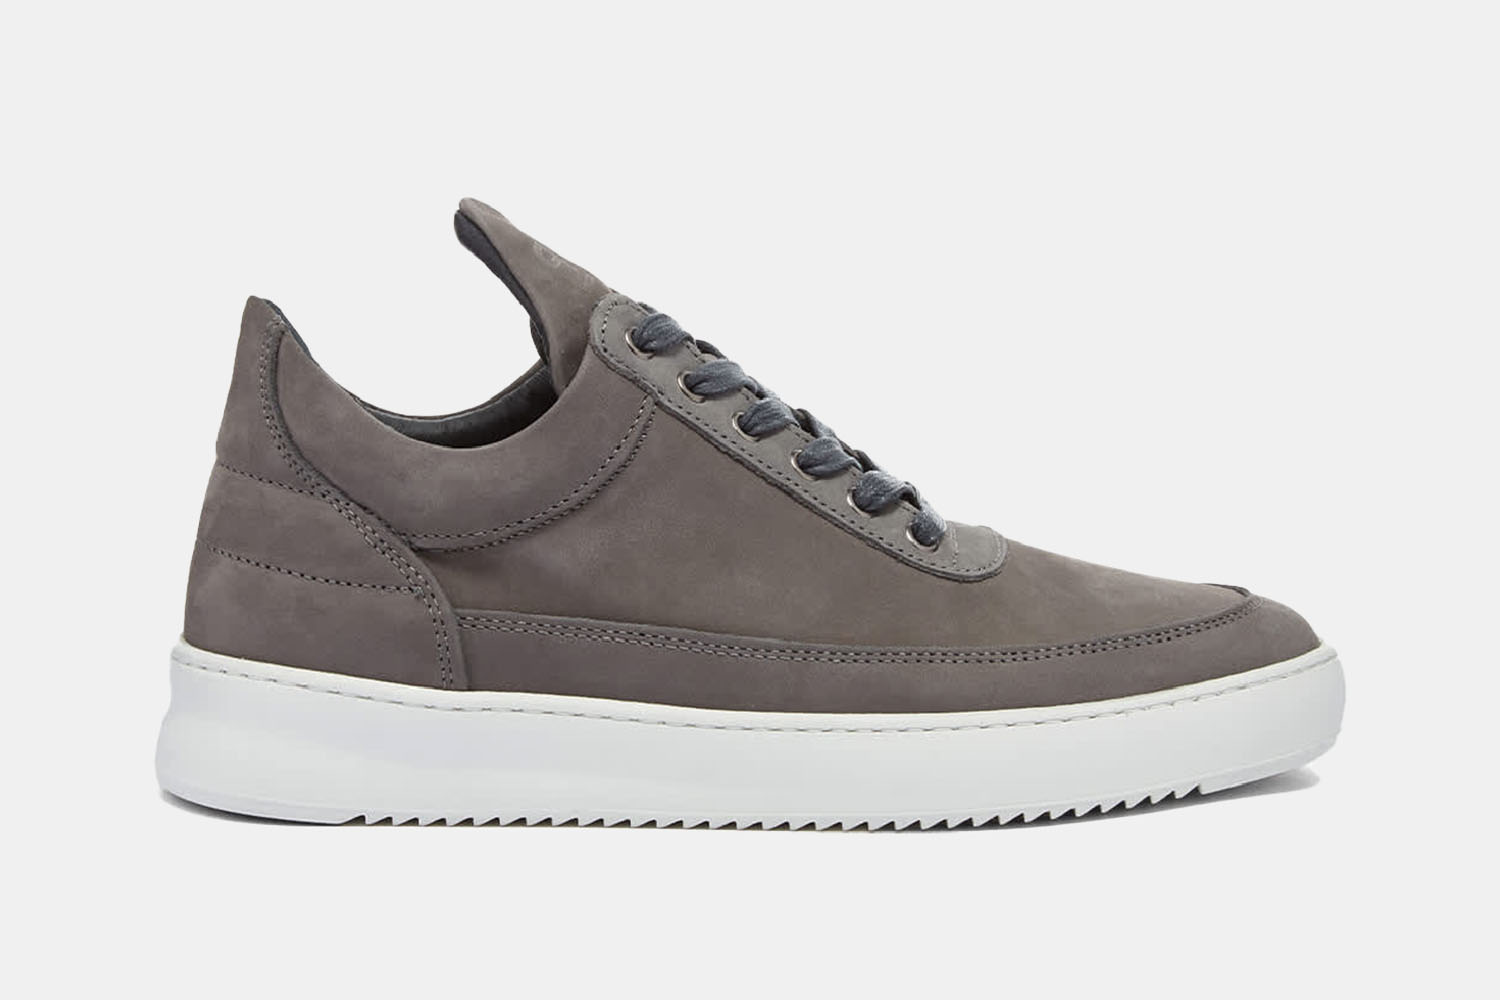 A suede grey sneaker with a white sole.